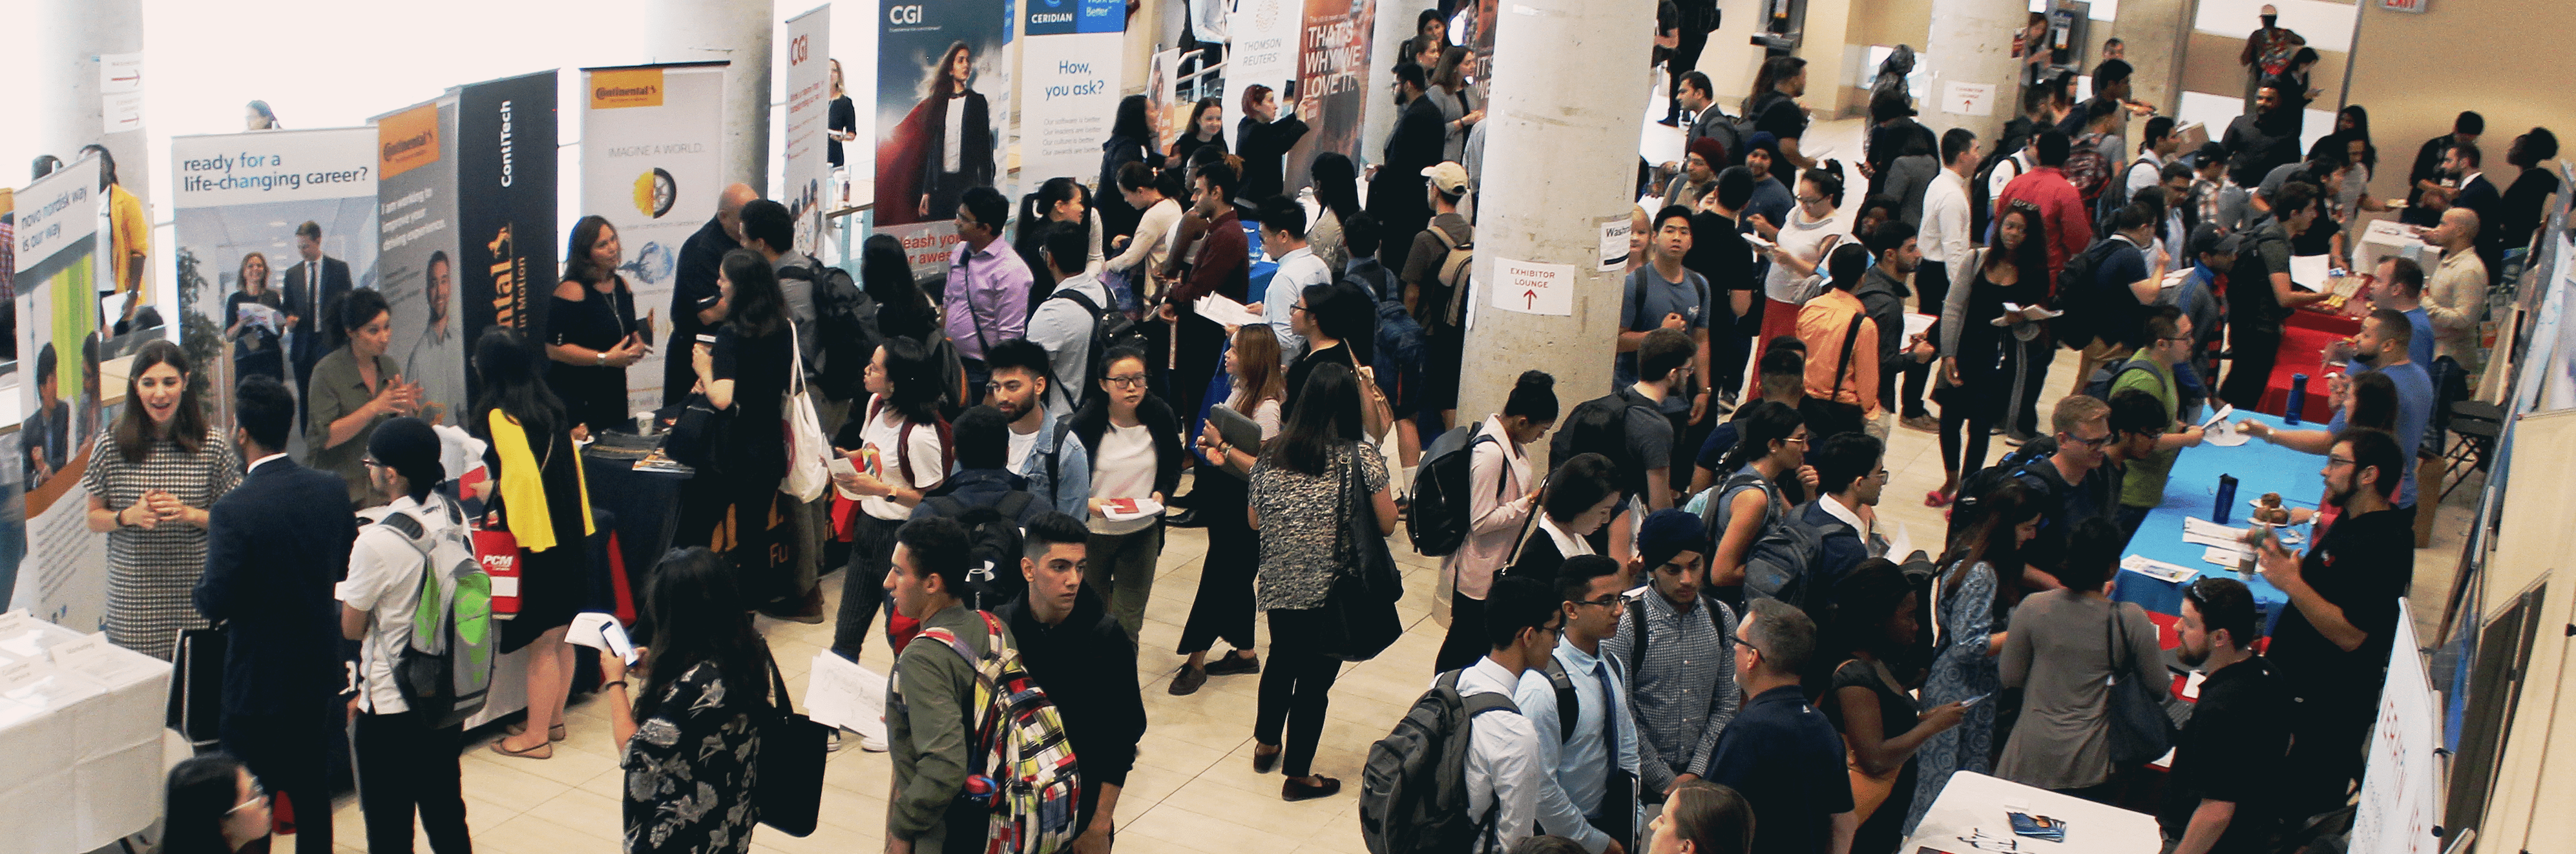 Picture shows people networking in a job fair setting